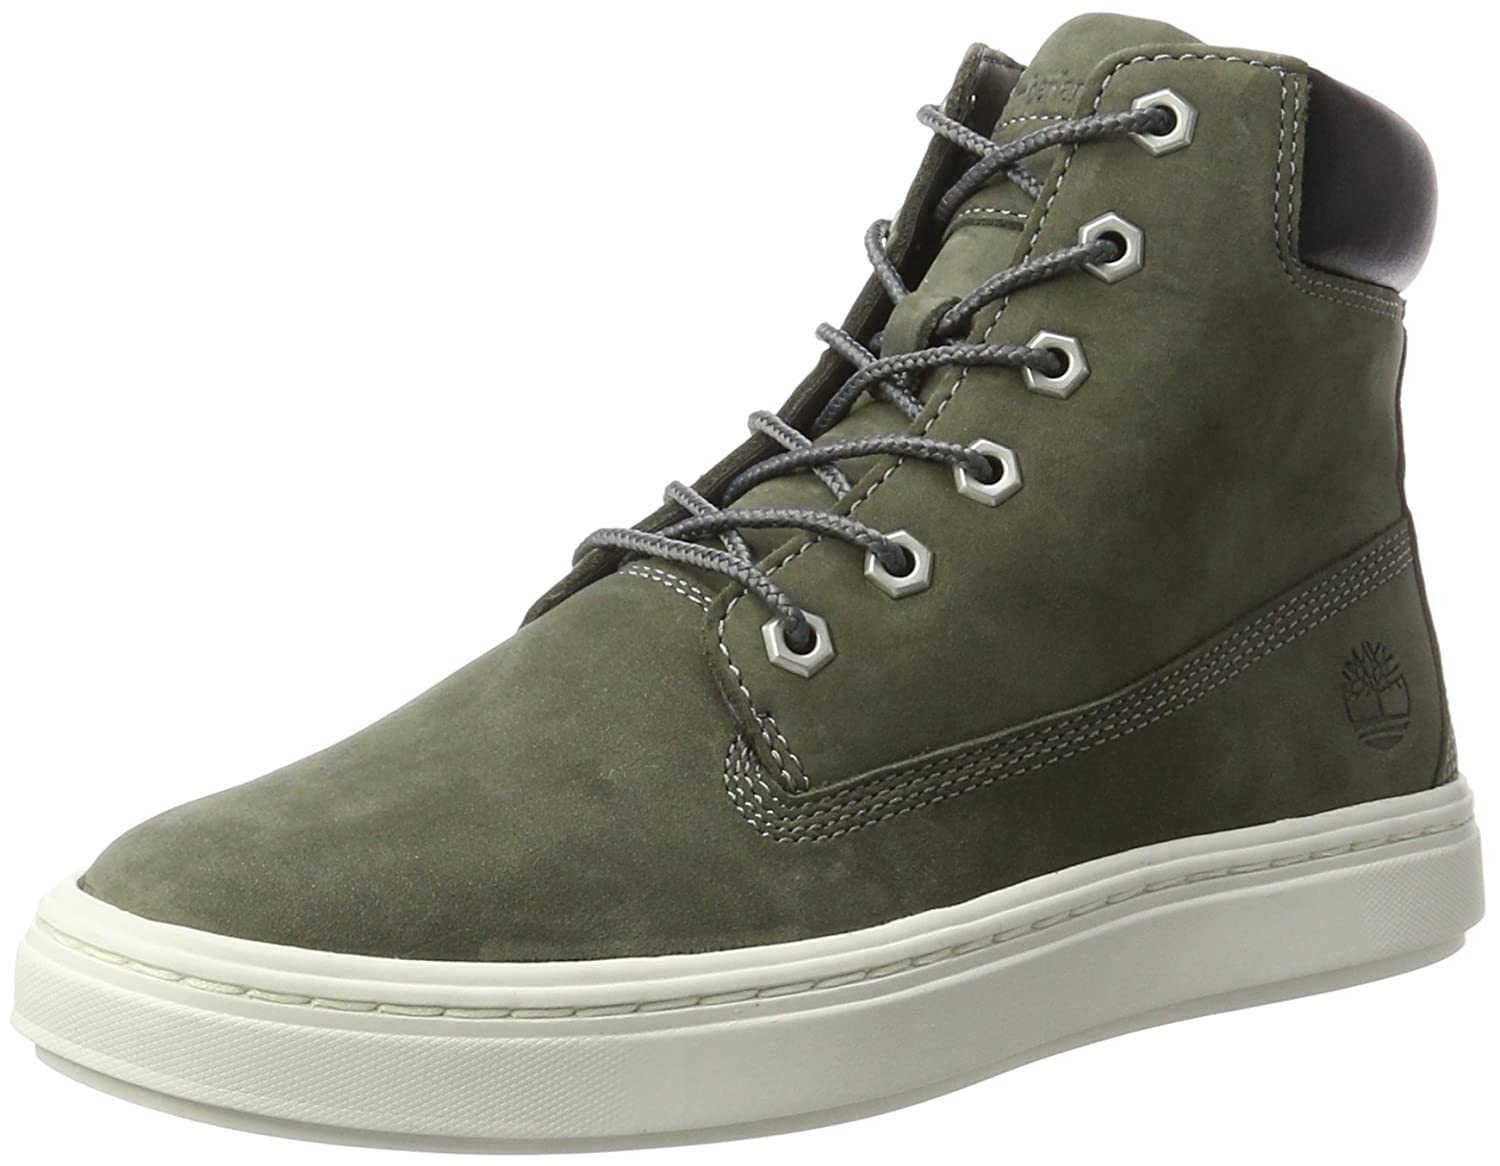 Timberland Graphite) Londyn, Bottes Bottes Femme Timberland Gris (New Graphite) 2117677 - shopssong.space